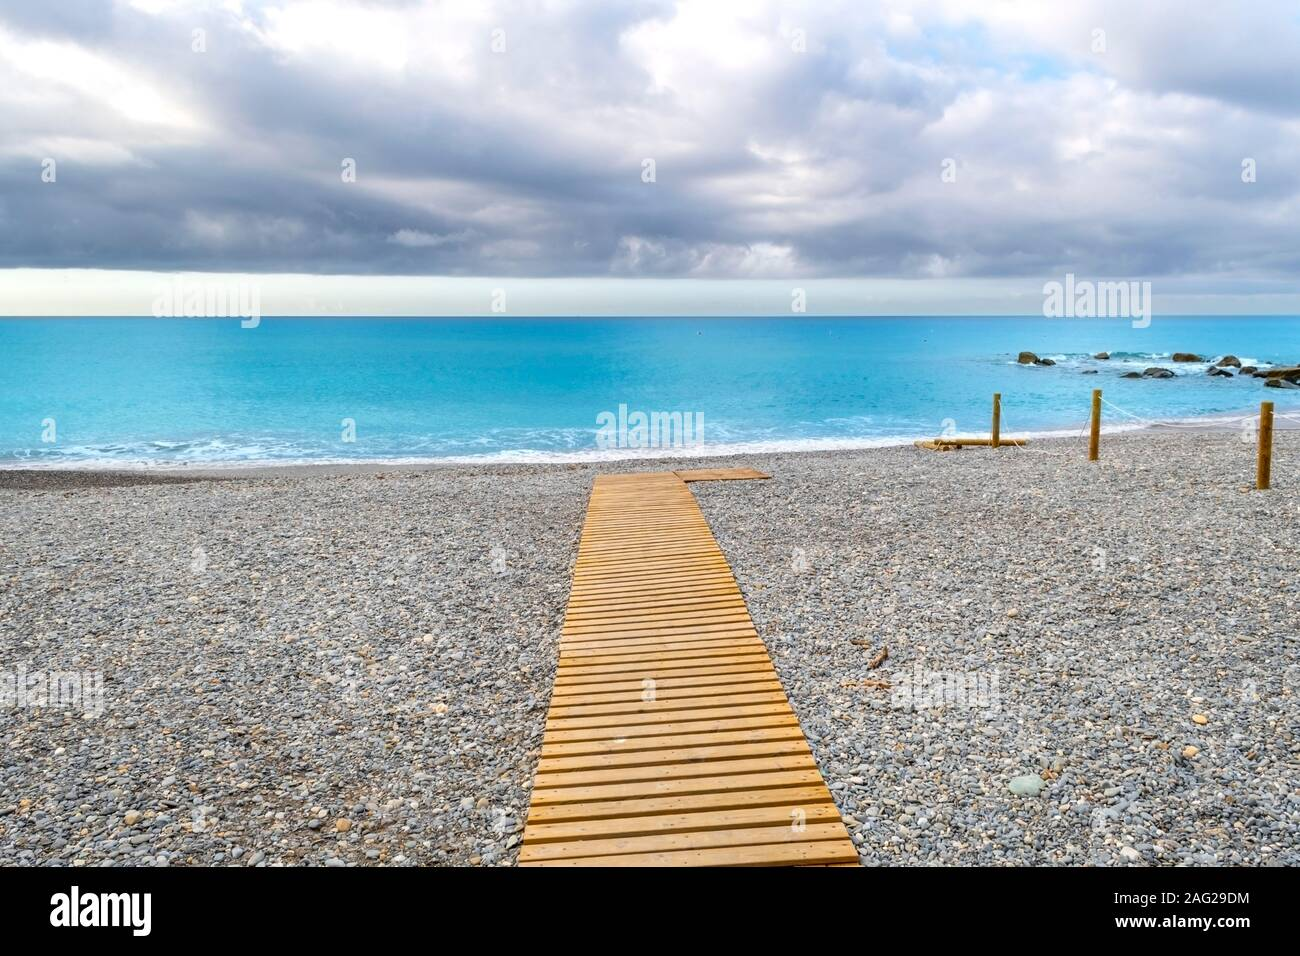 A beach pathway to the sea on an overcast morning on the Italian Riviera at Ventimiglia, Italy Stock Photo